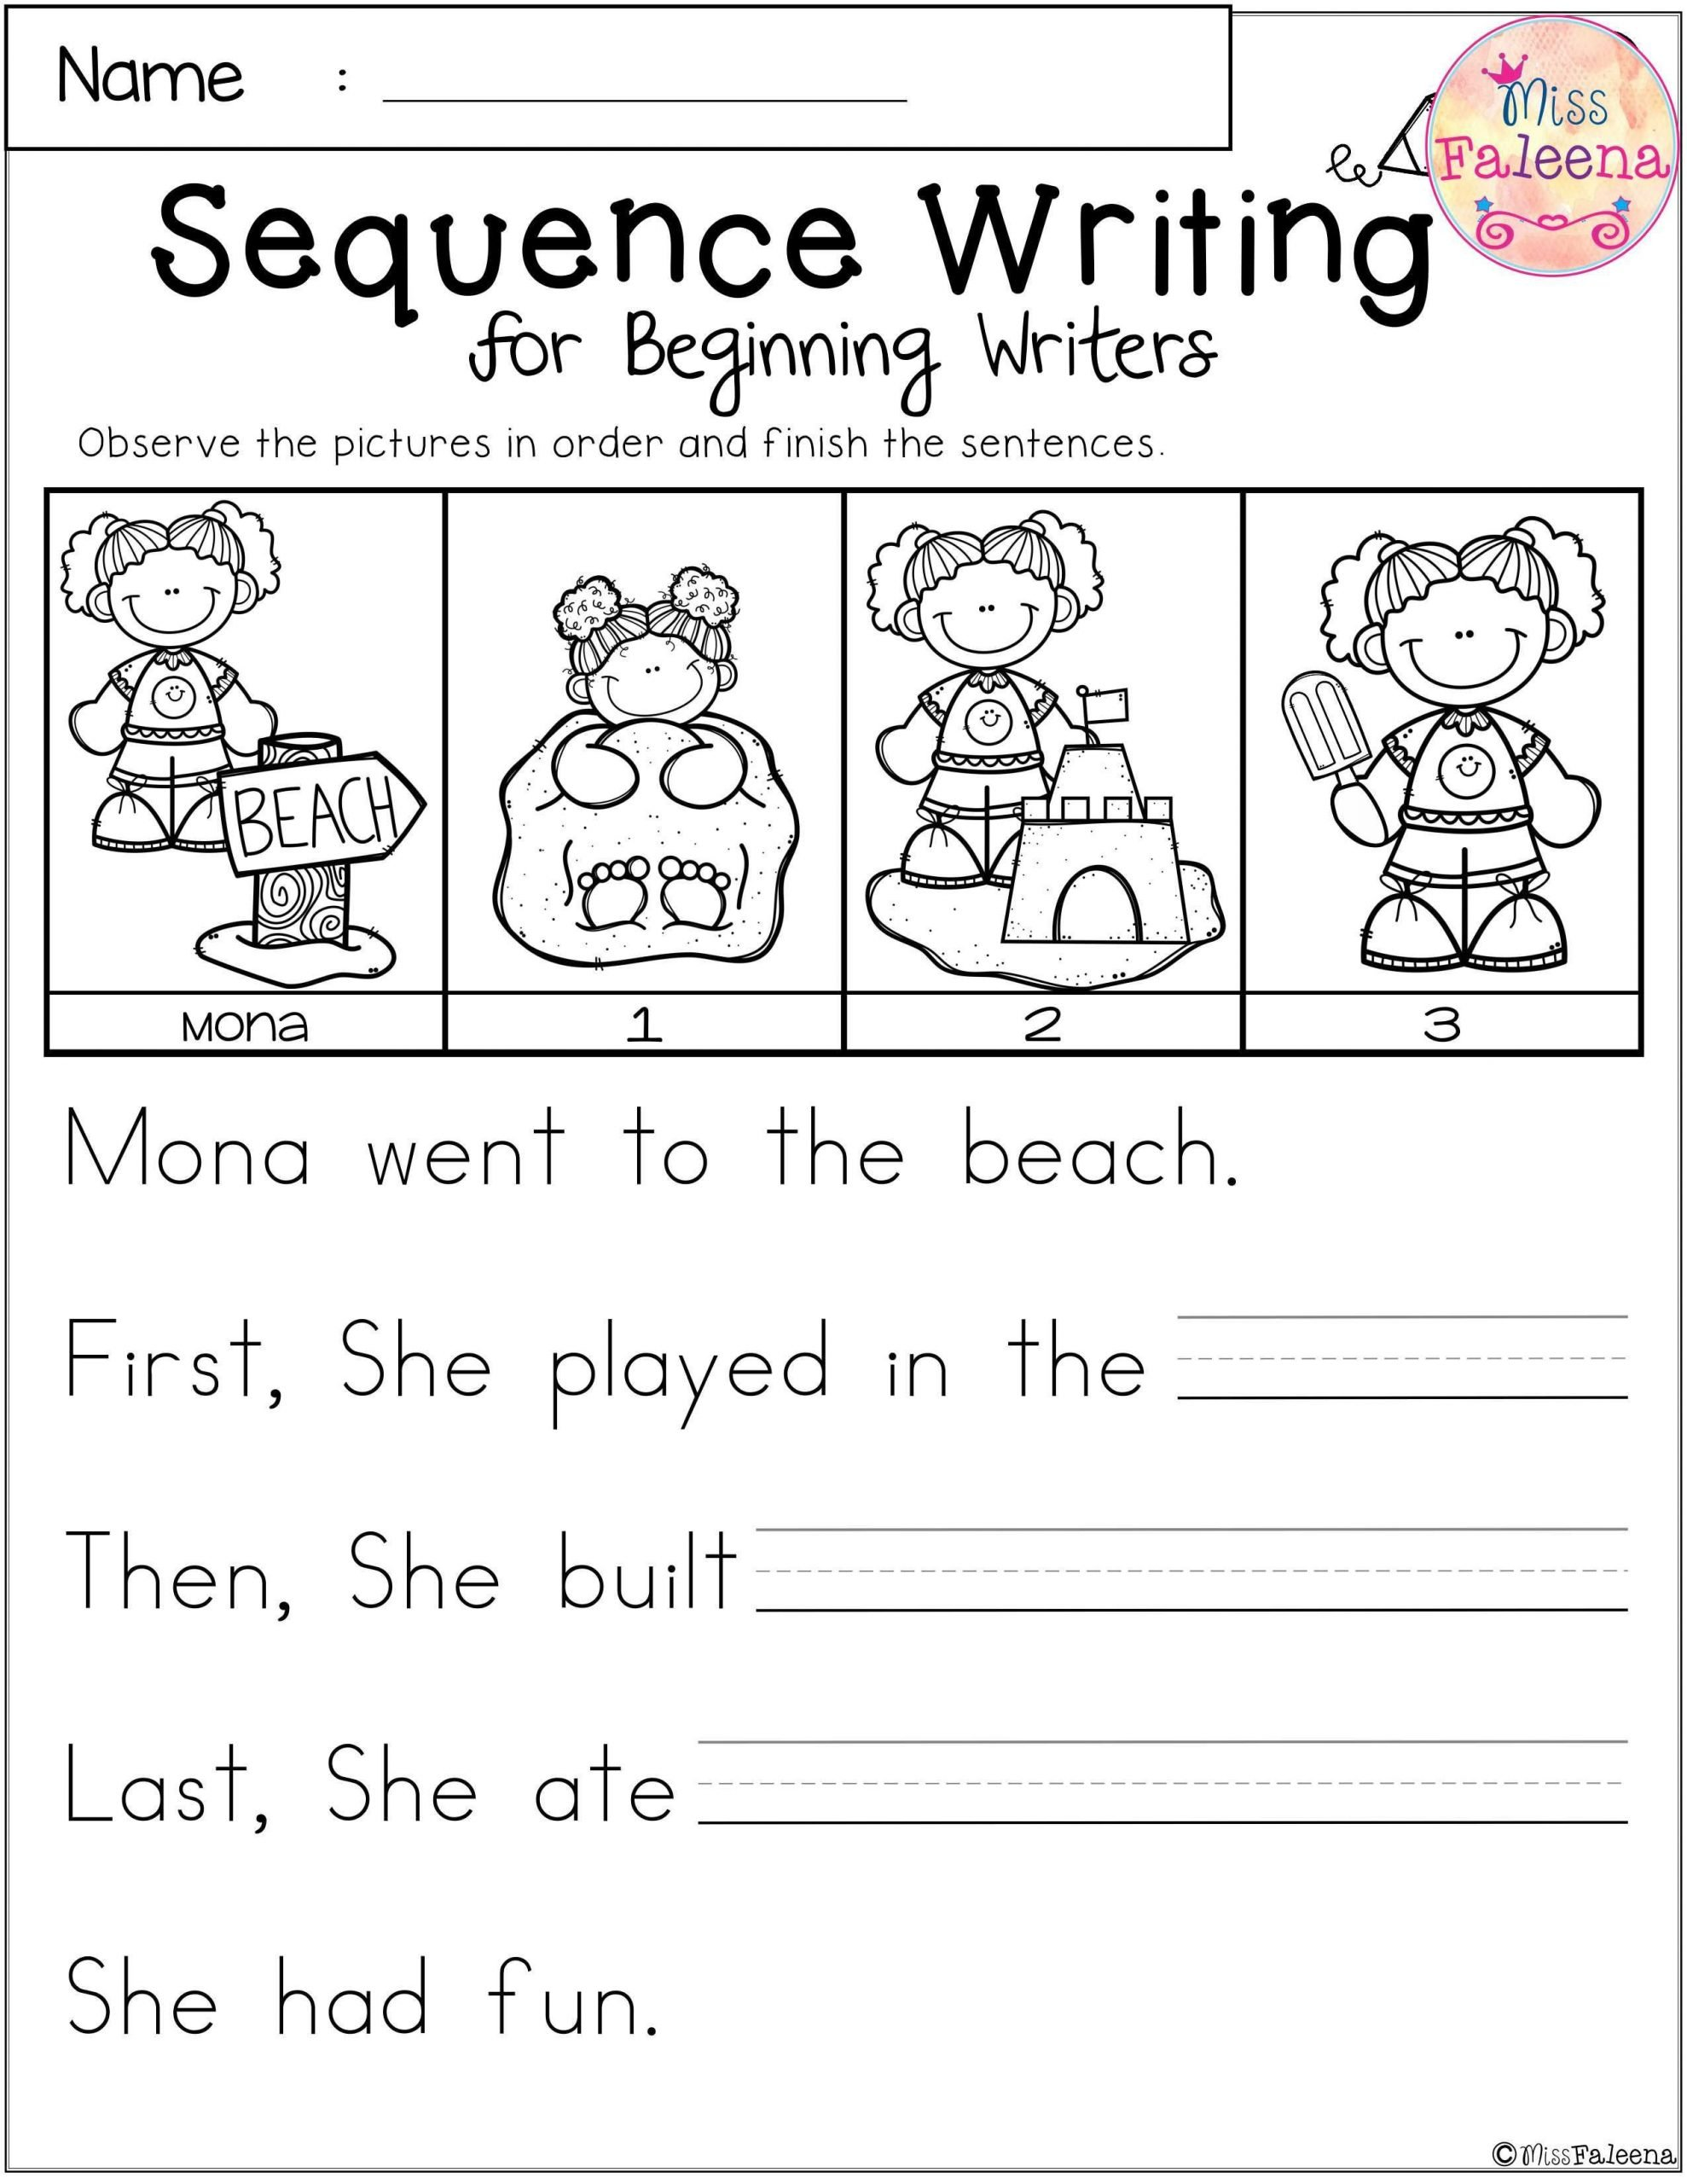 Sequencing events Worksheets Grade 6 Free Sequence Writing for Beginning Writers